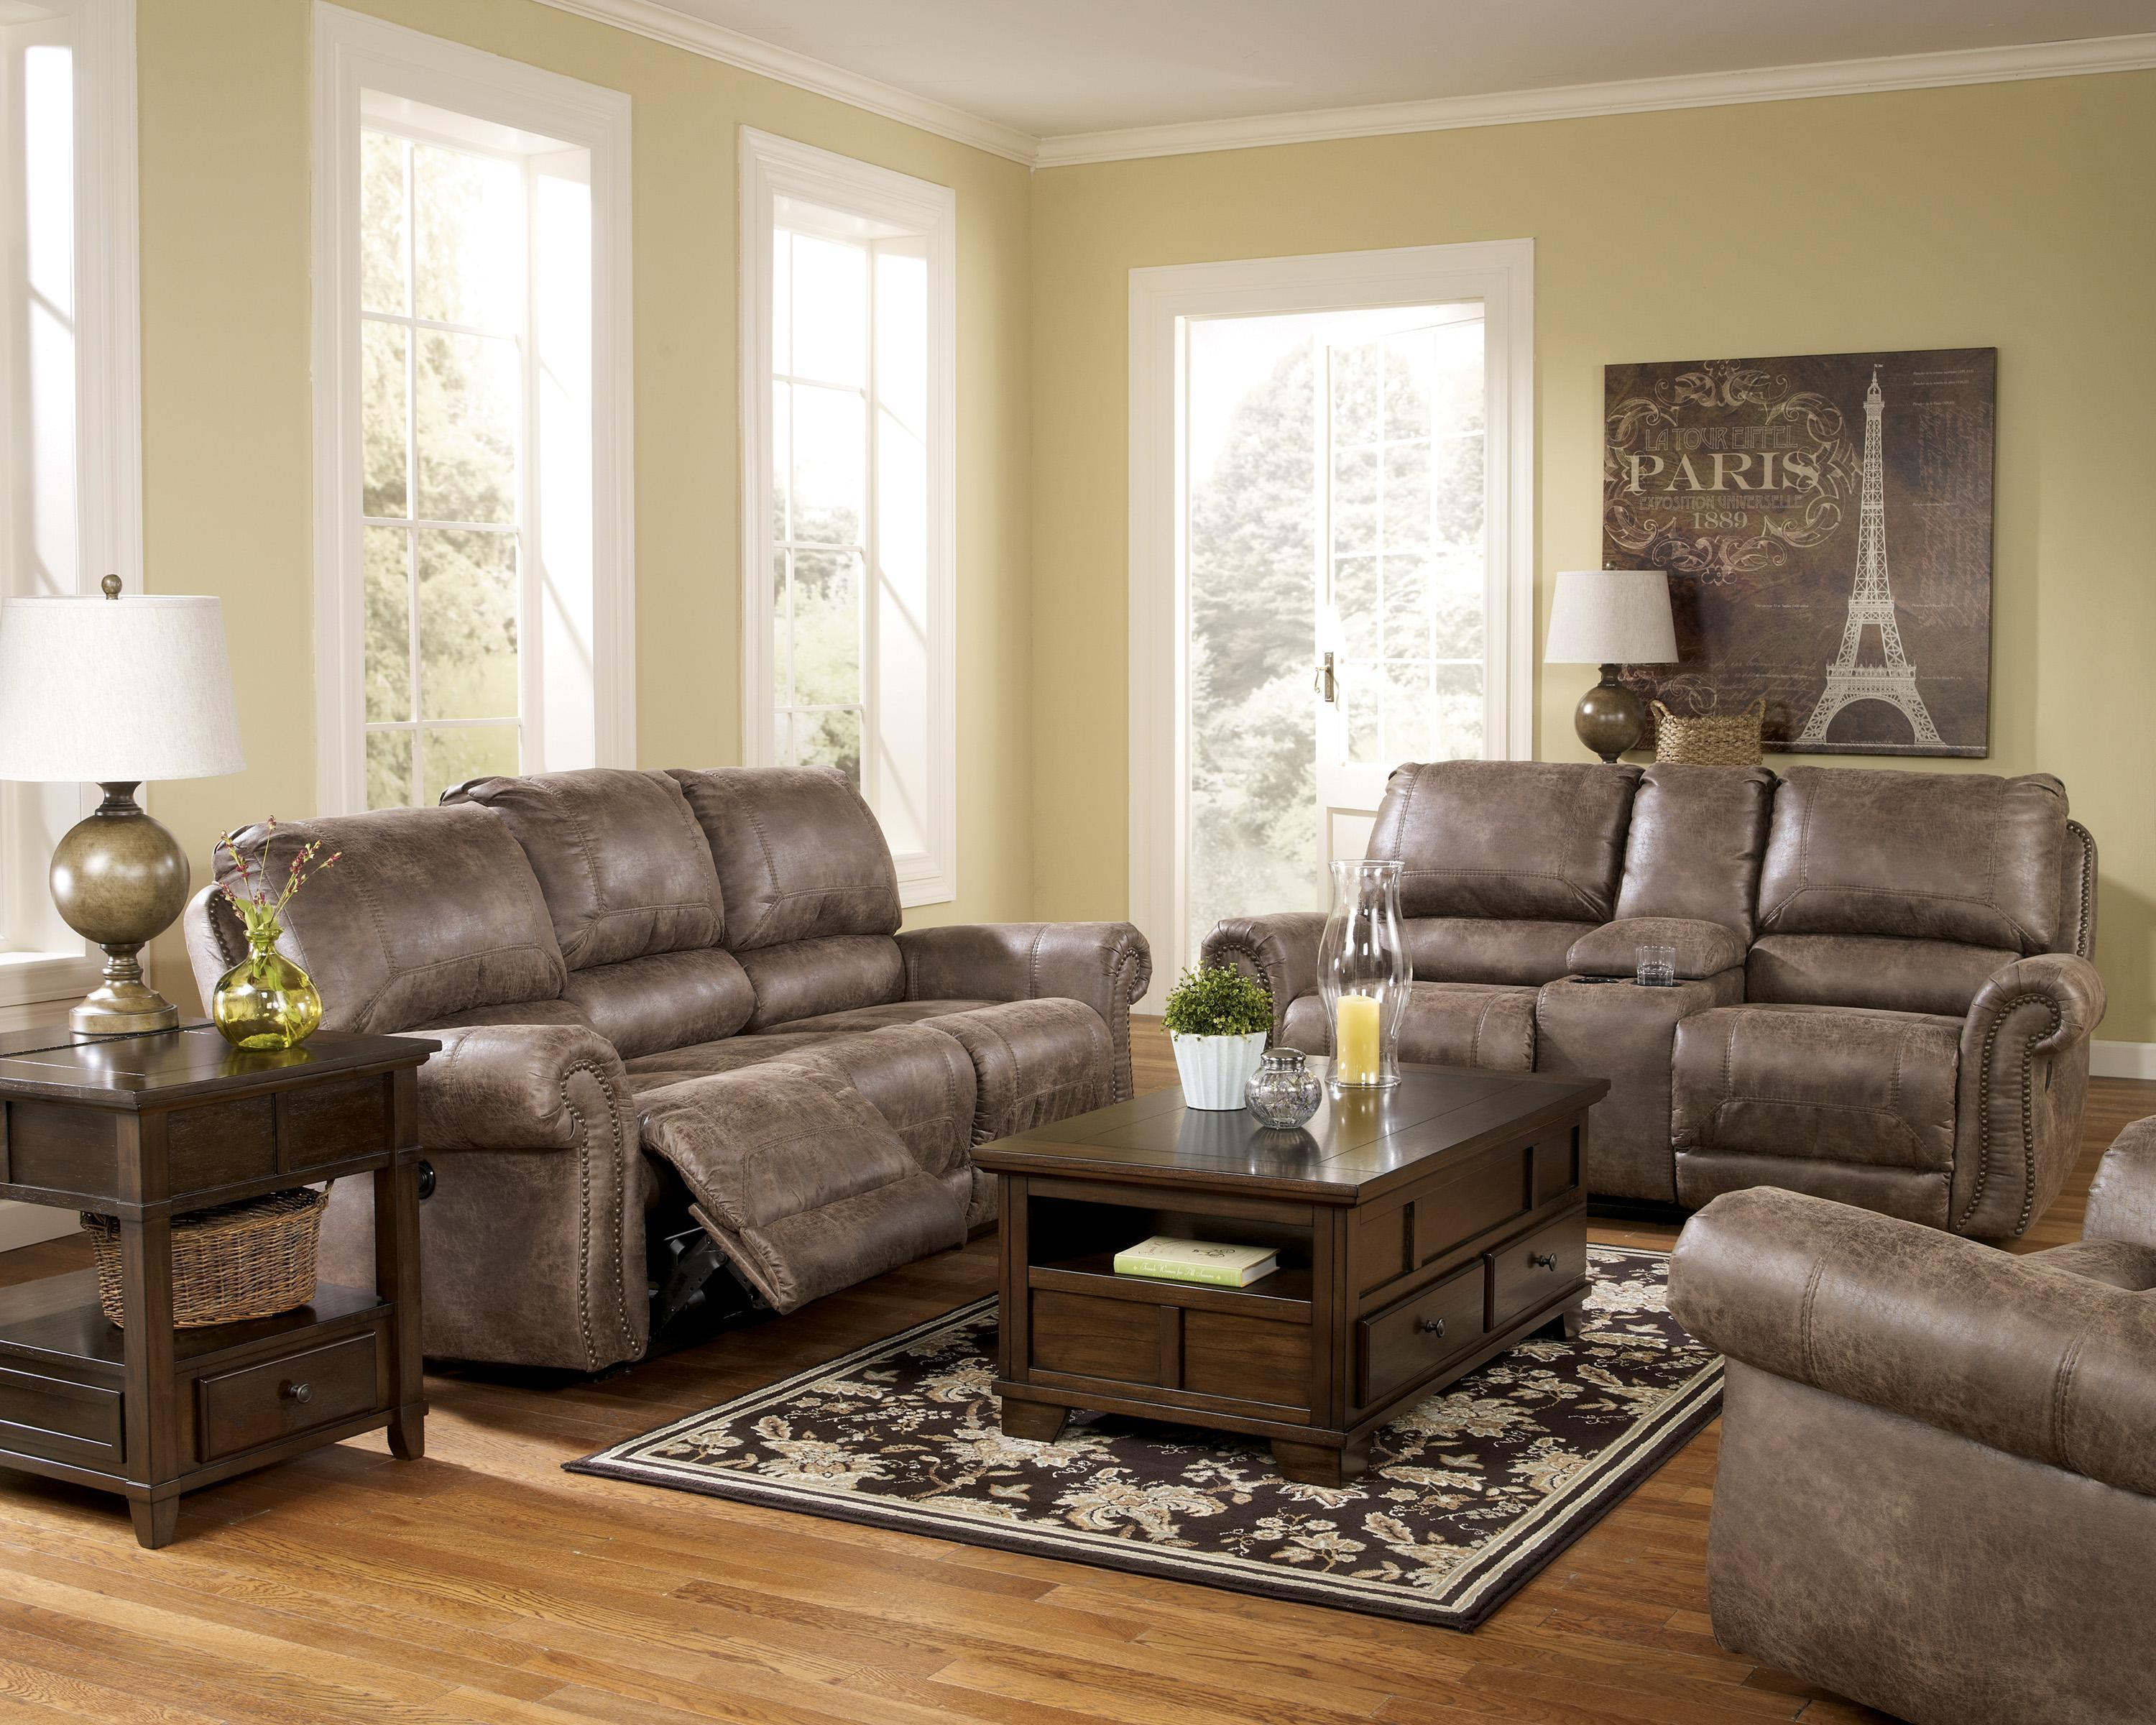 Reclining Faux Leather Sofa with Rolled Arms & Nail Head Trim by